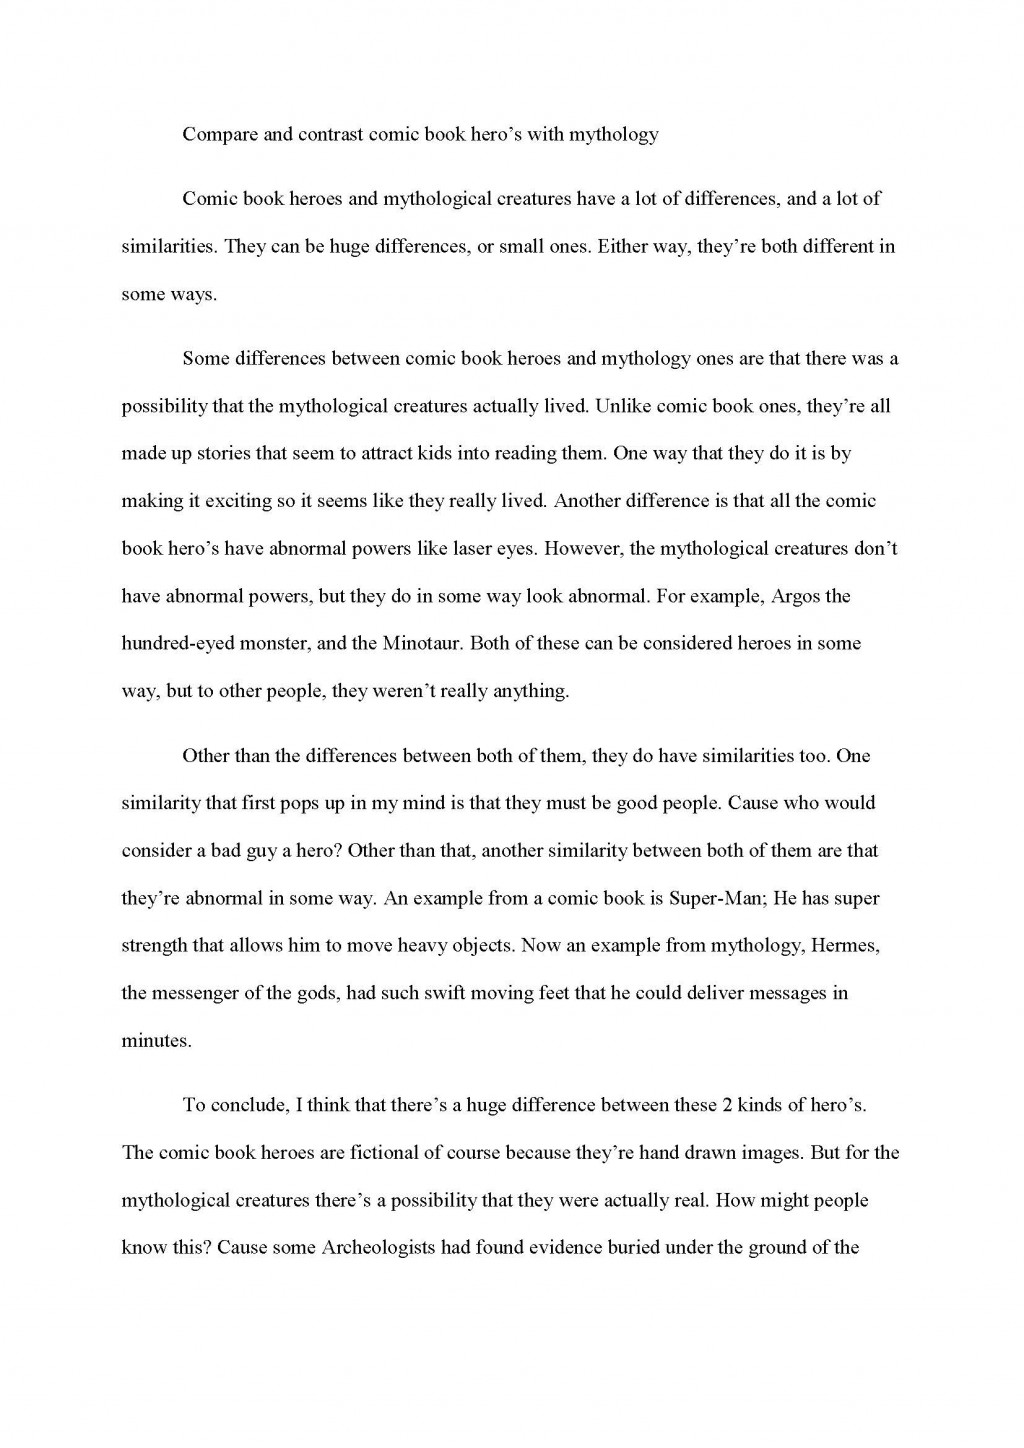 006 Compare And Contrast Essay Conclusion Example Staggering High School College Introduction Vs. Large